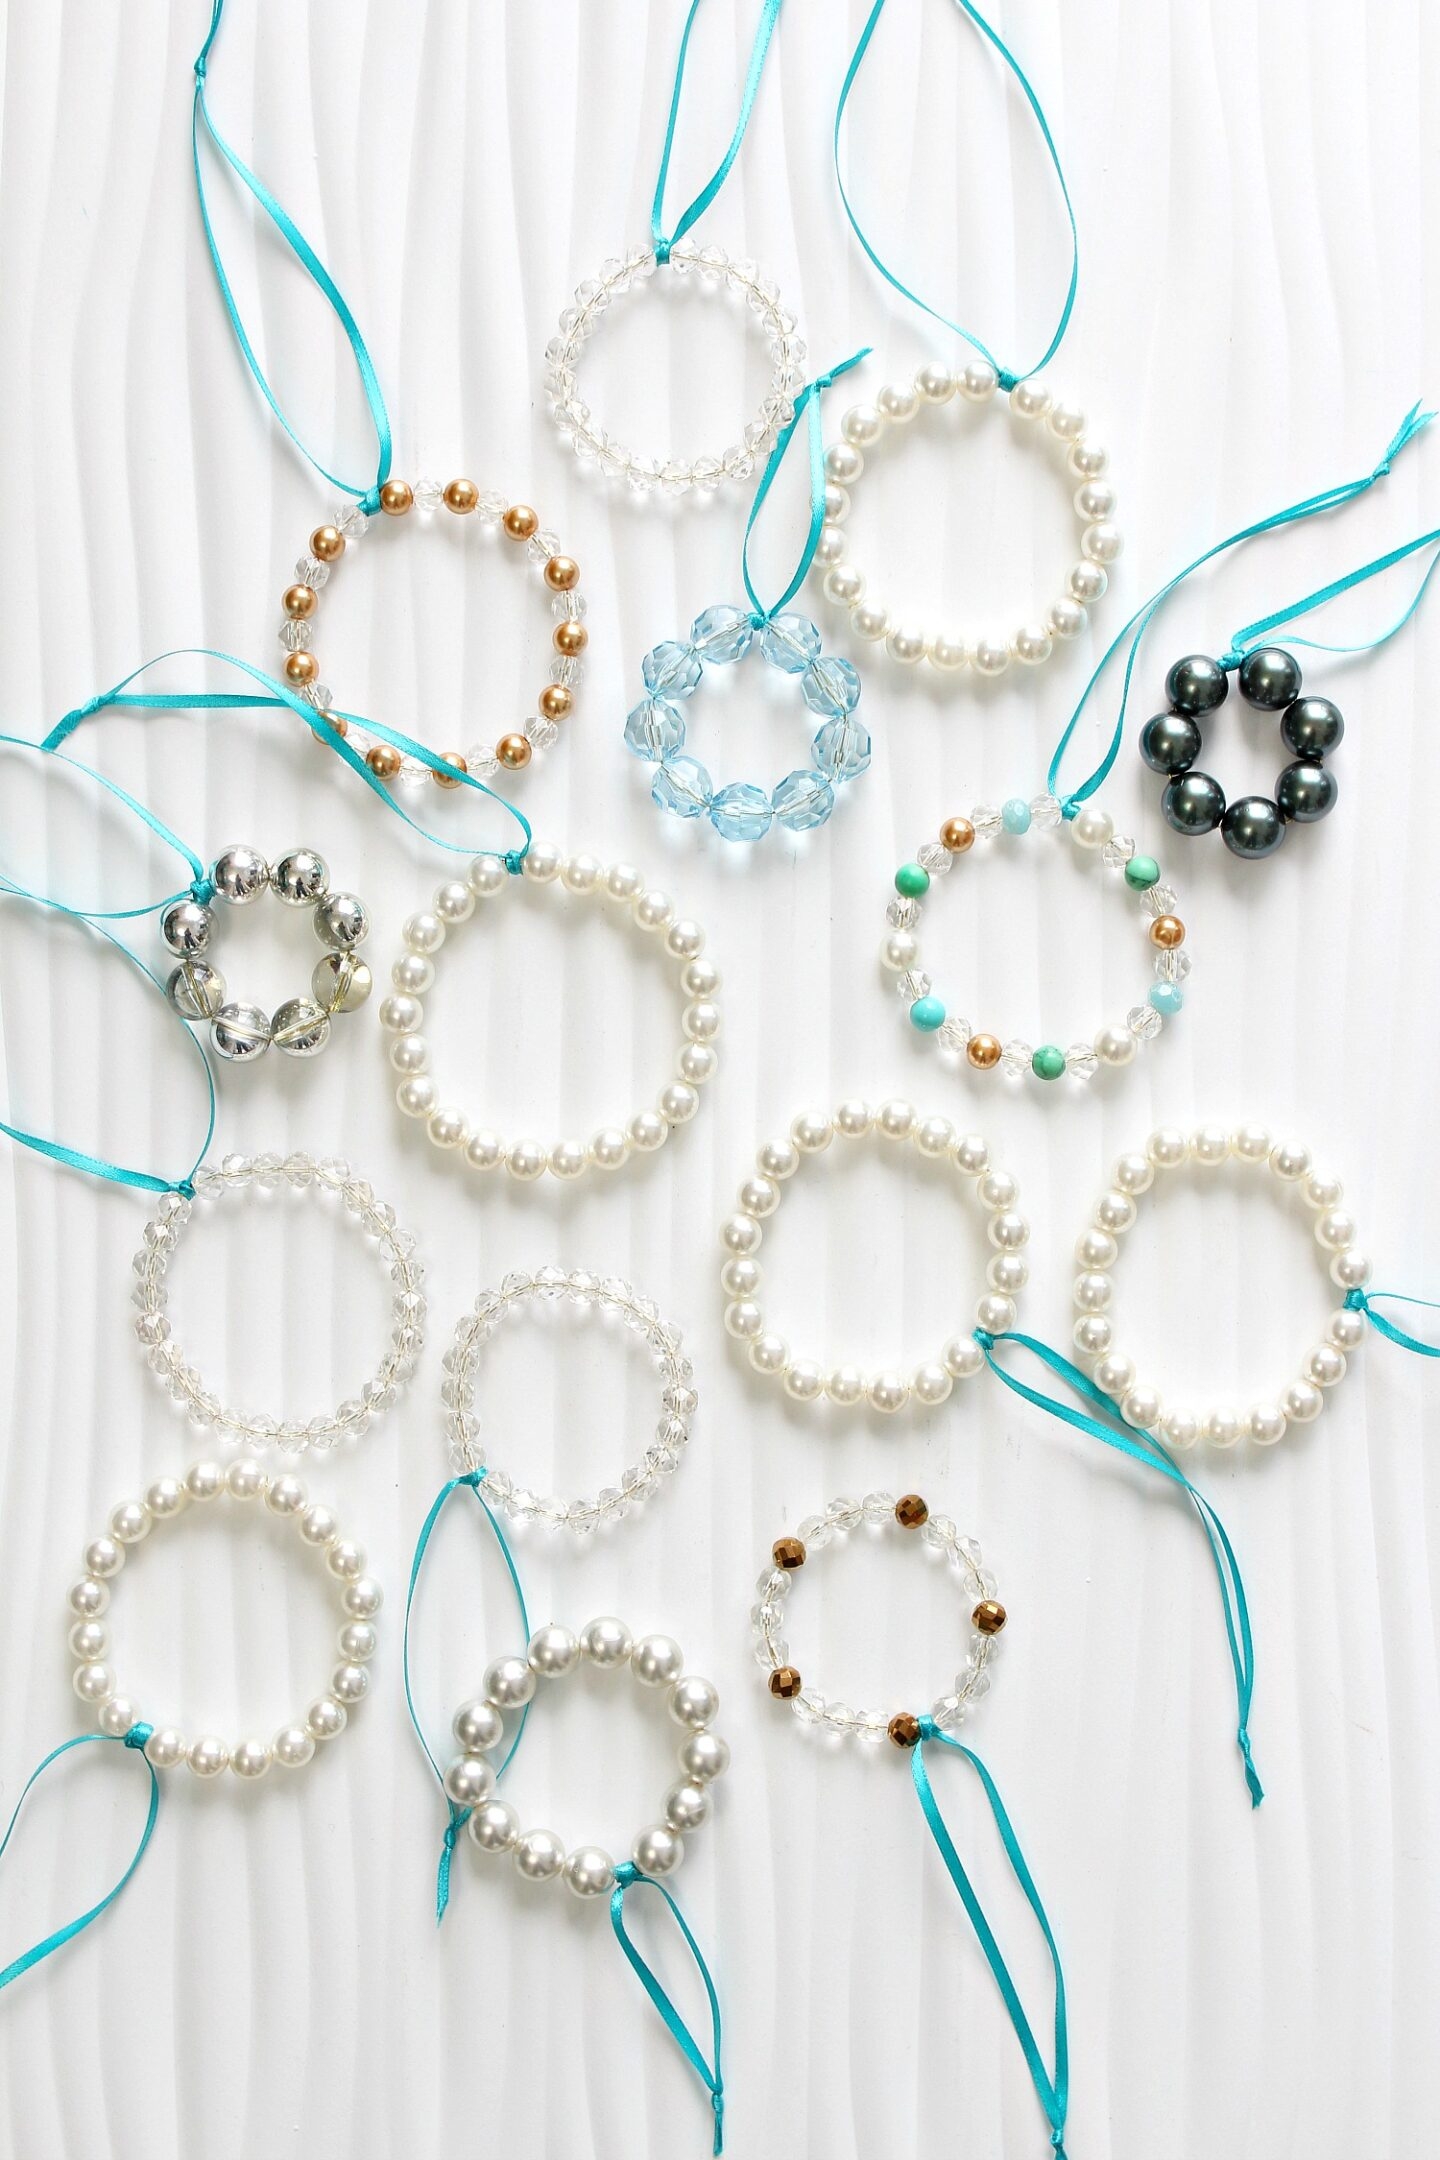 DIY Beaded Wreath Christmas Ornaments